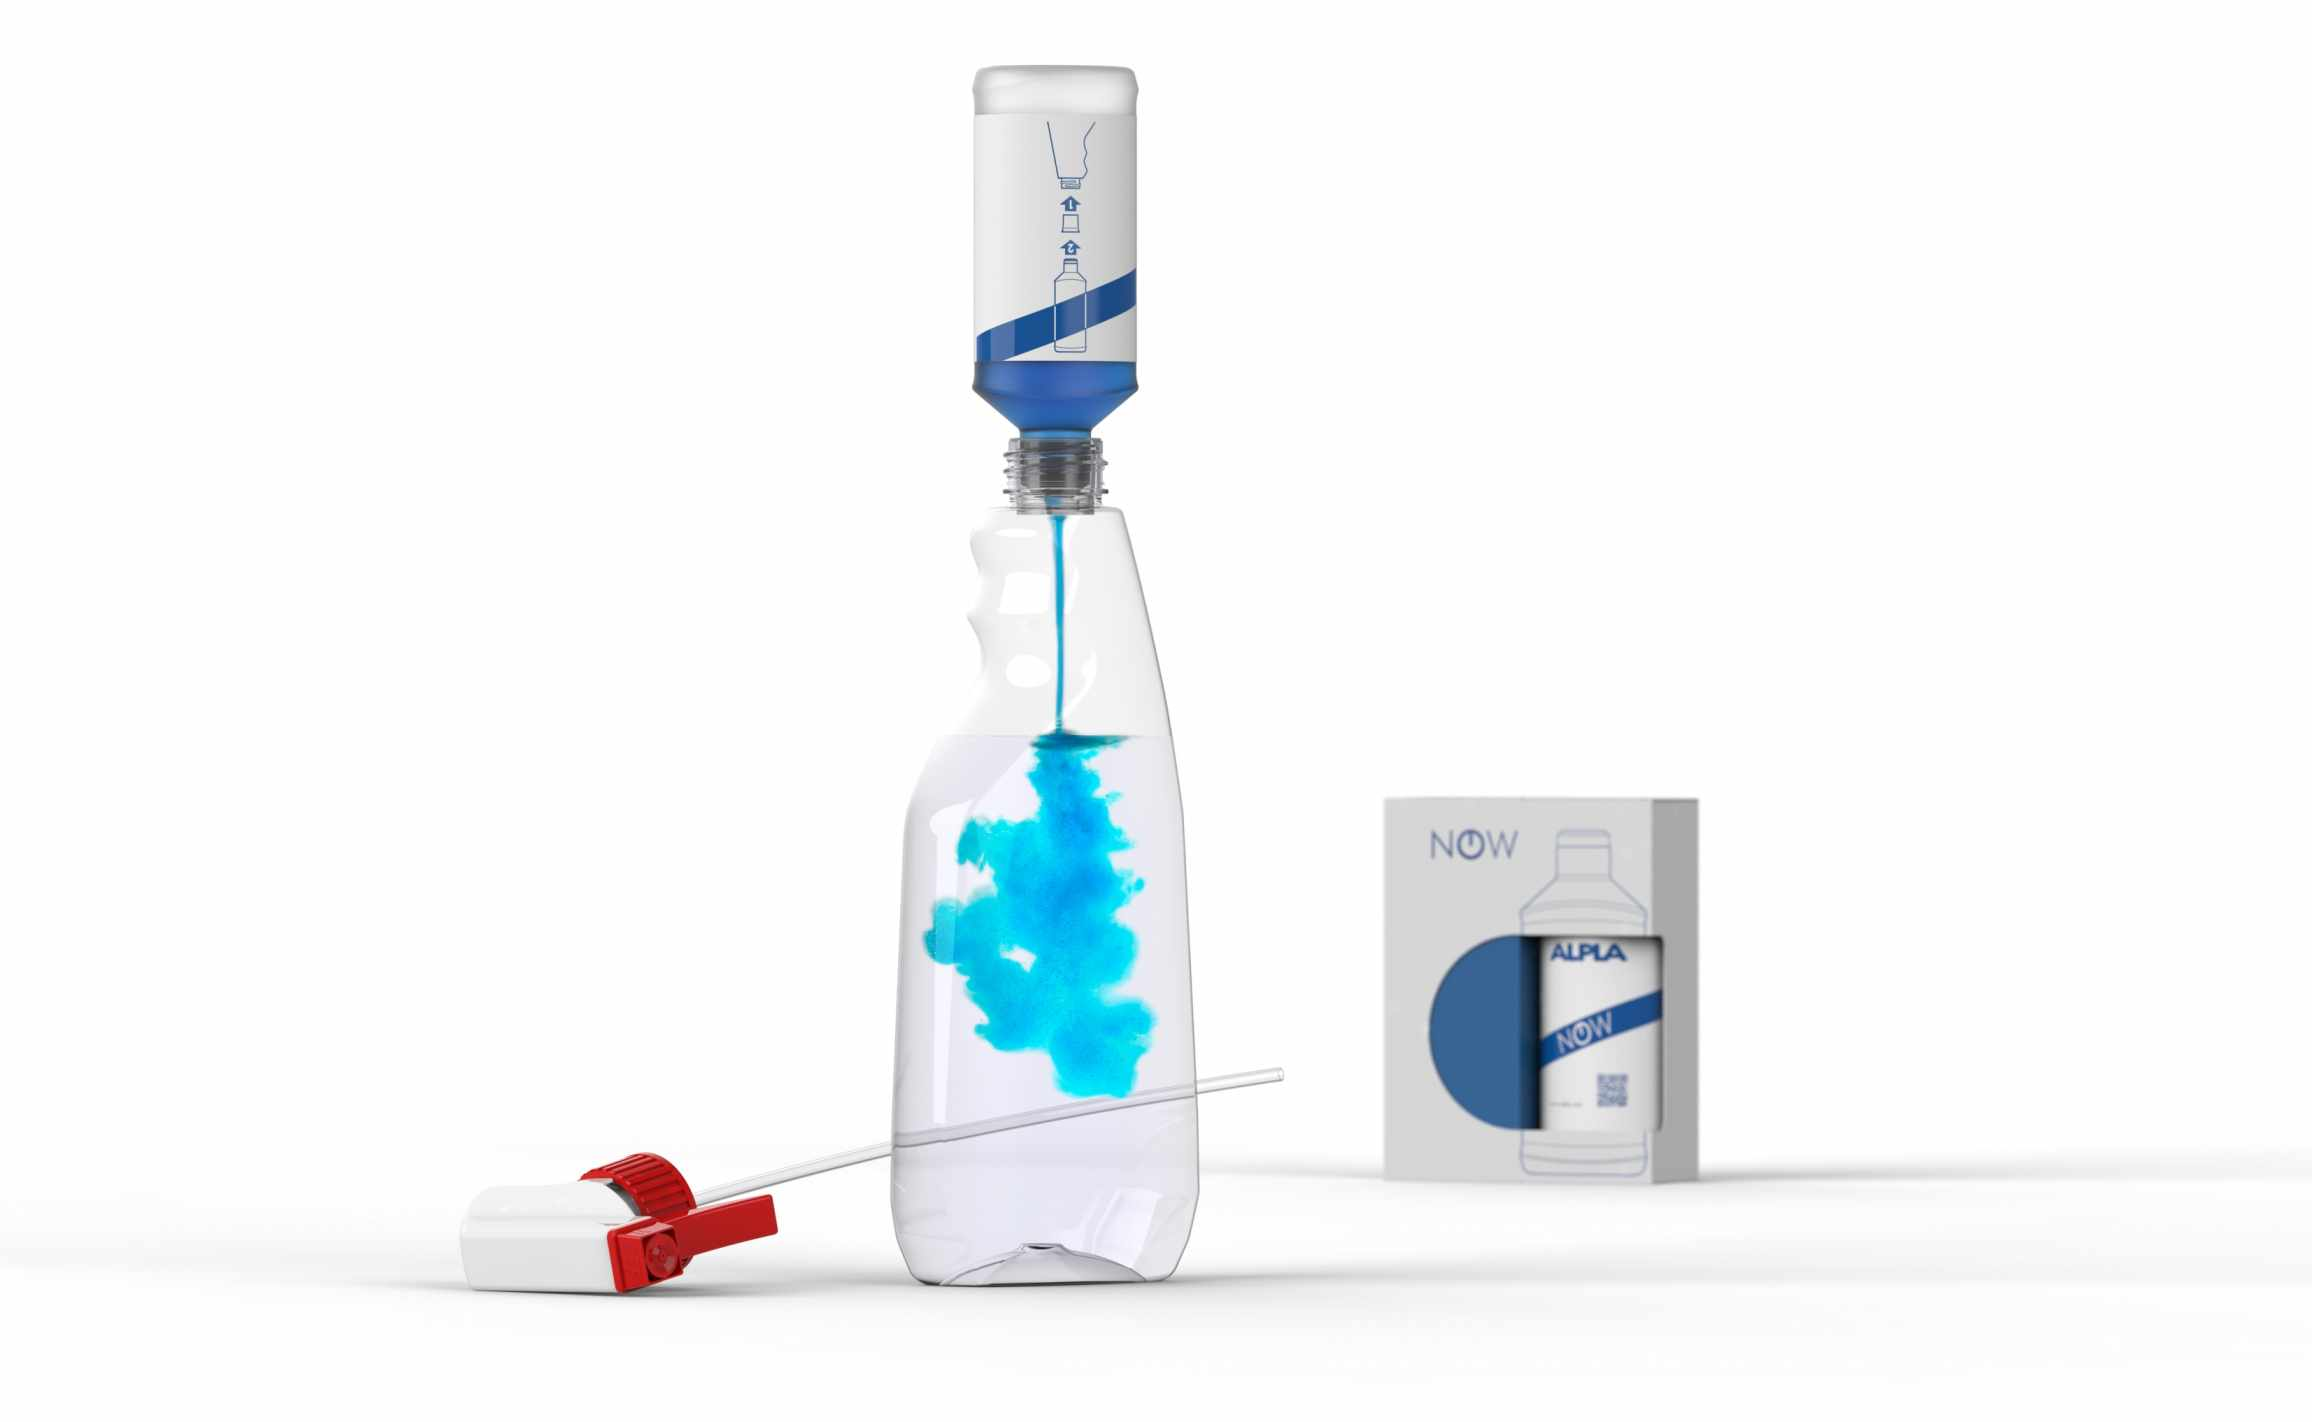 ALPLA PRESENTS INNOVATIVE REFILL PACKAGING